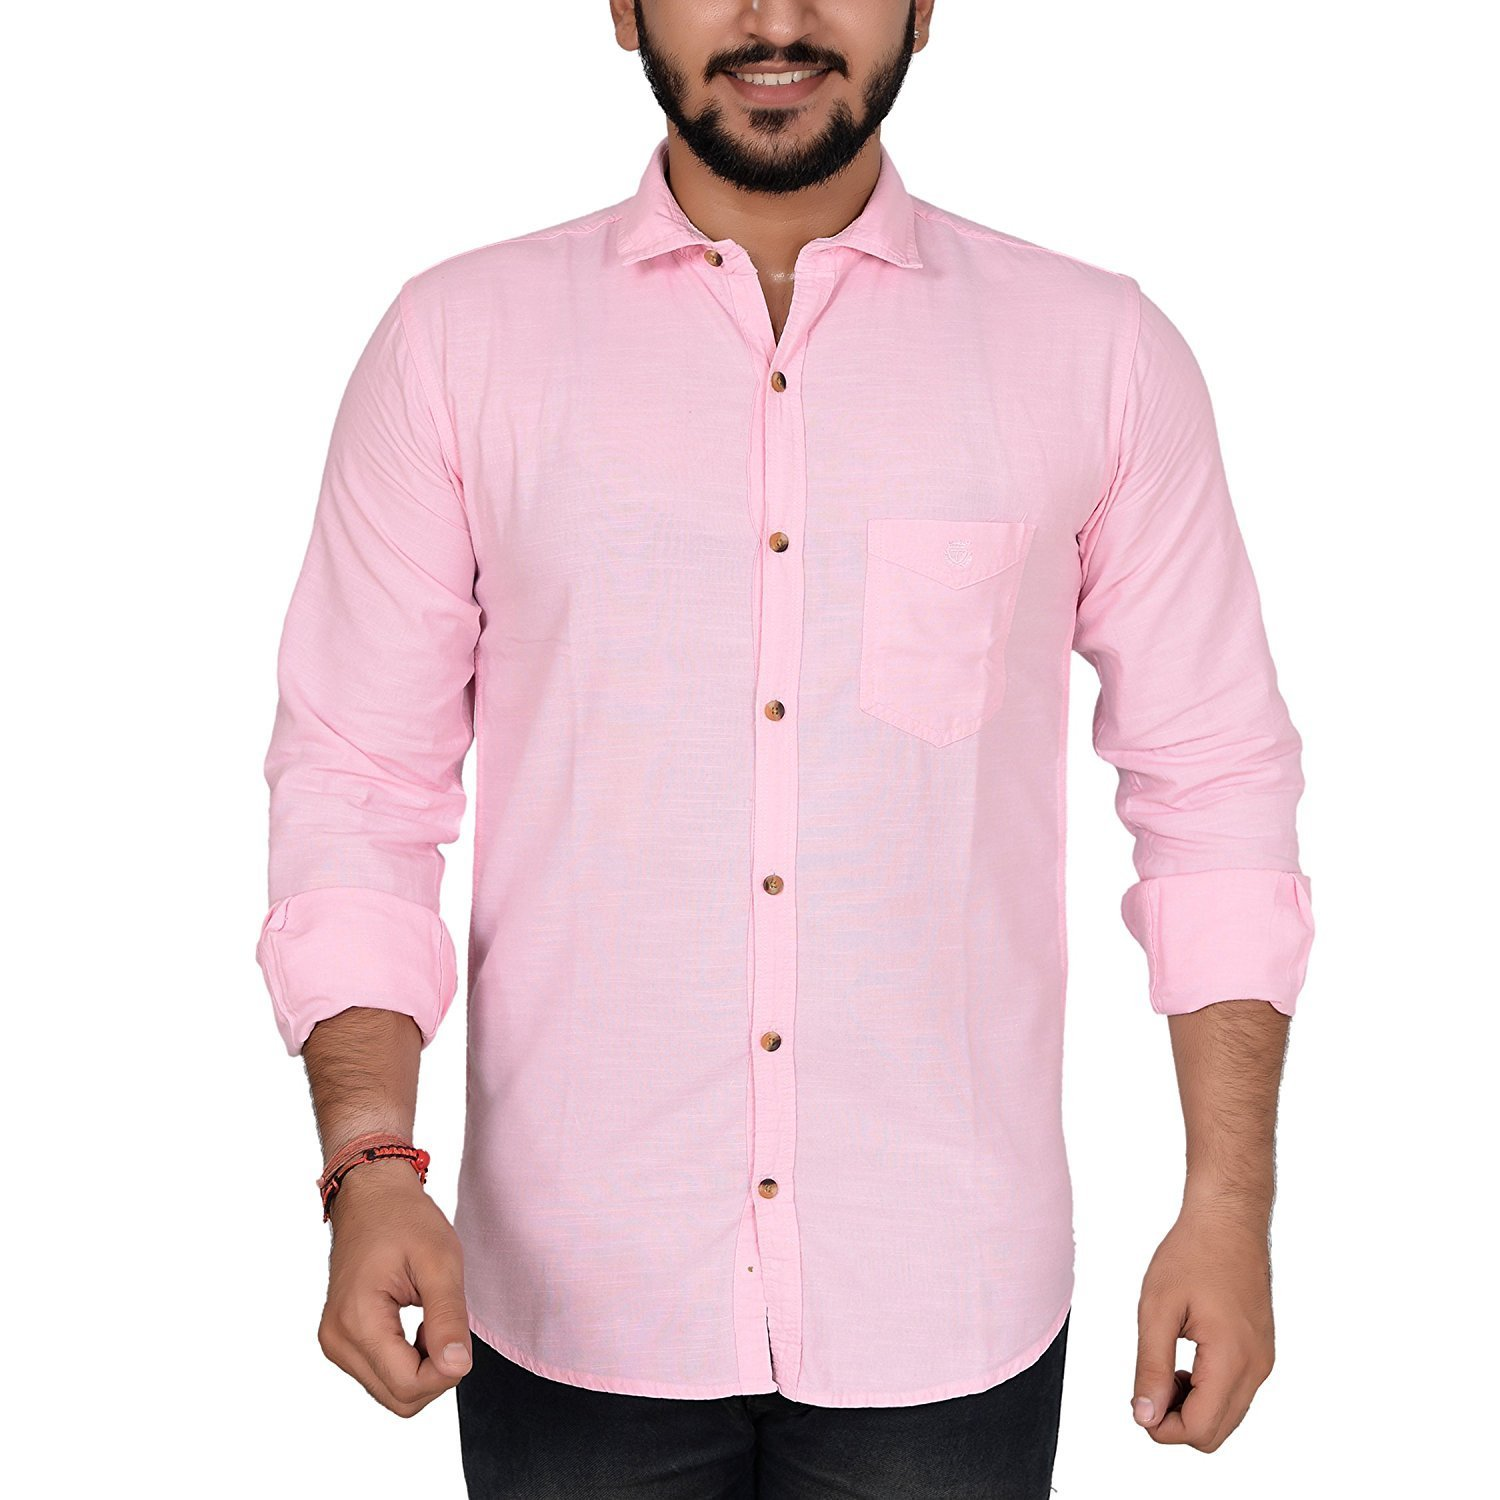 (Size 40) ANRY Cotton Casual Shirt- Am...